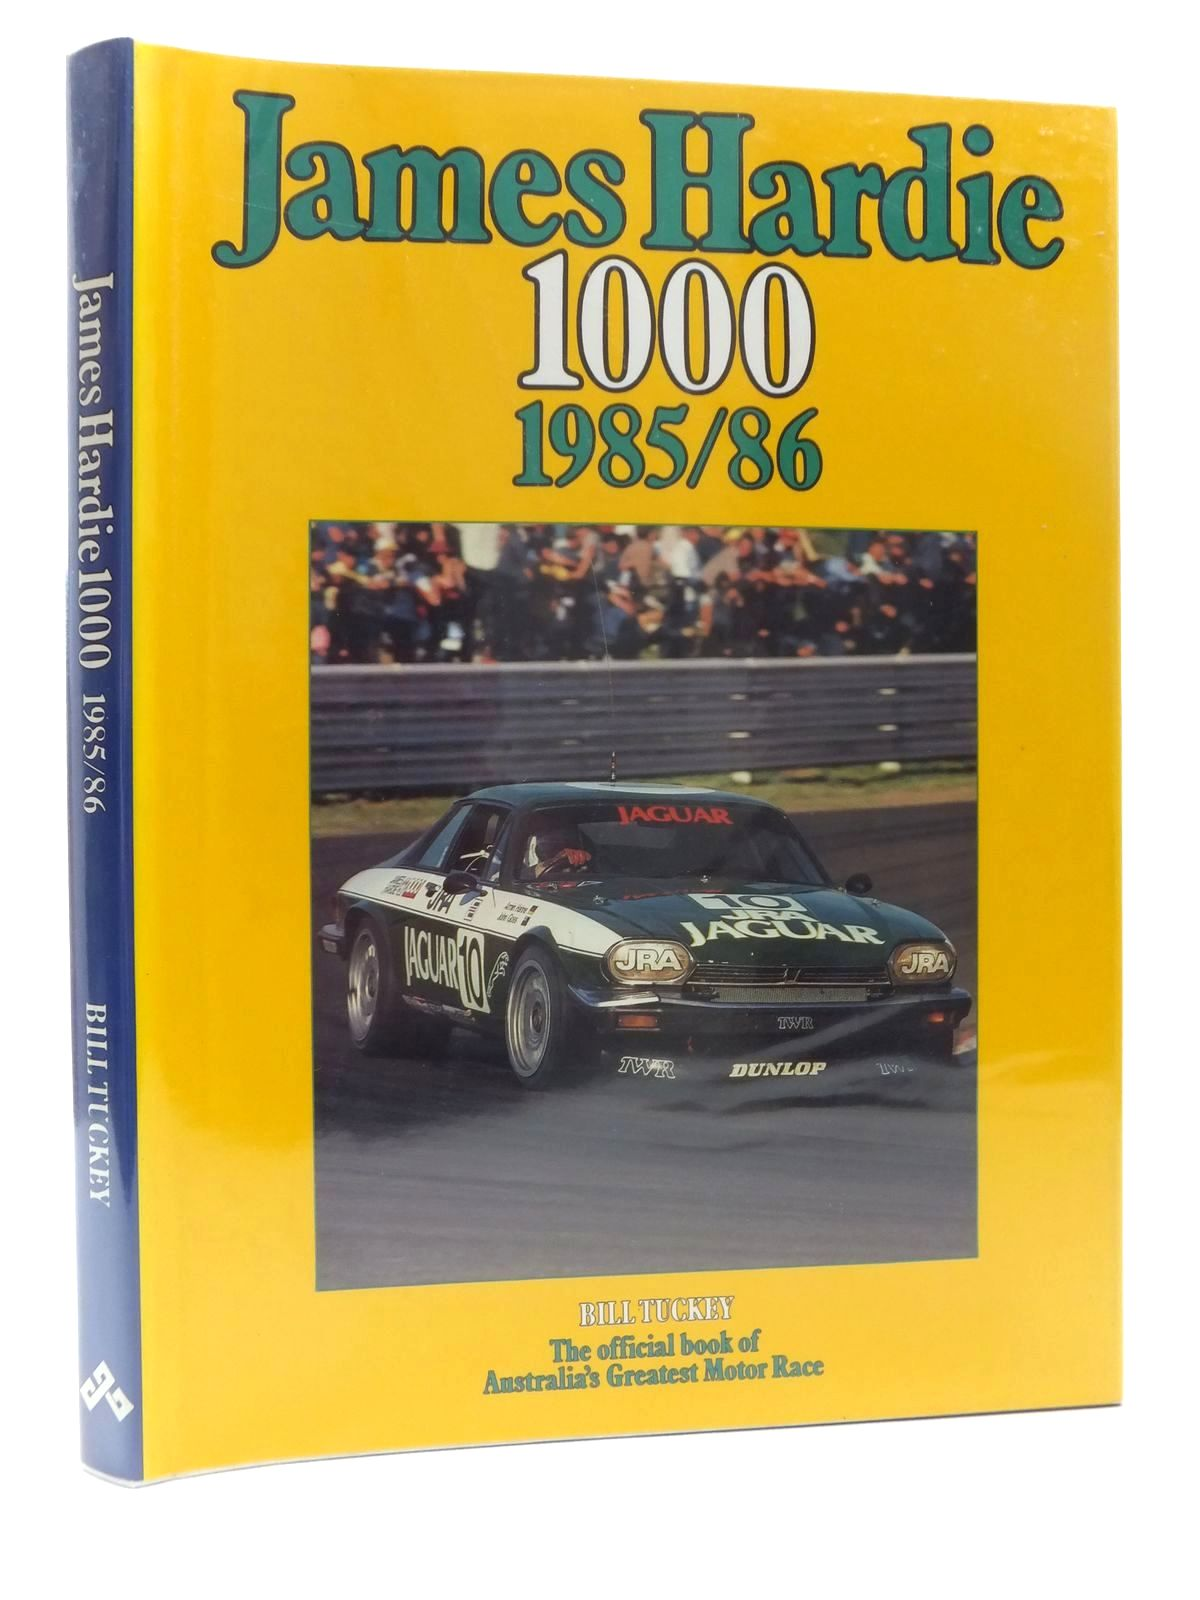 Photo of JAMES HARDIE 1000 1985 / 86 written by Tuckey, Bill published by Berghouse Floyd Tuckey Publishing Group (STOCK CODE: 1609874)  for sale by Stella & Rose's Books